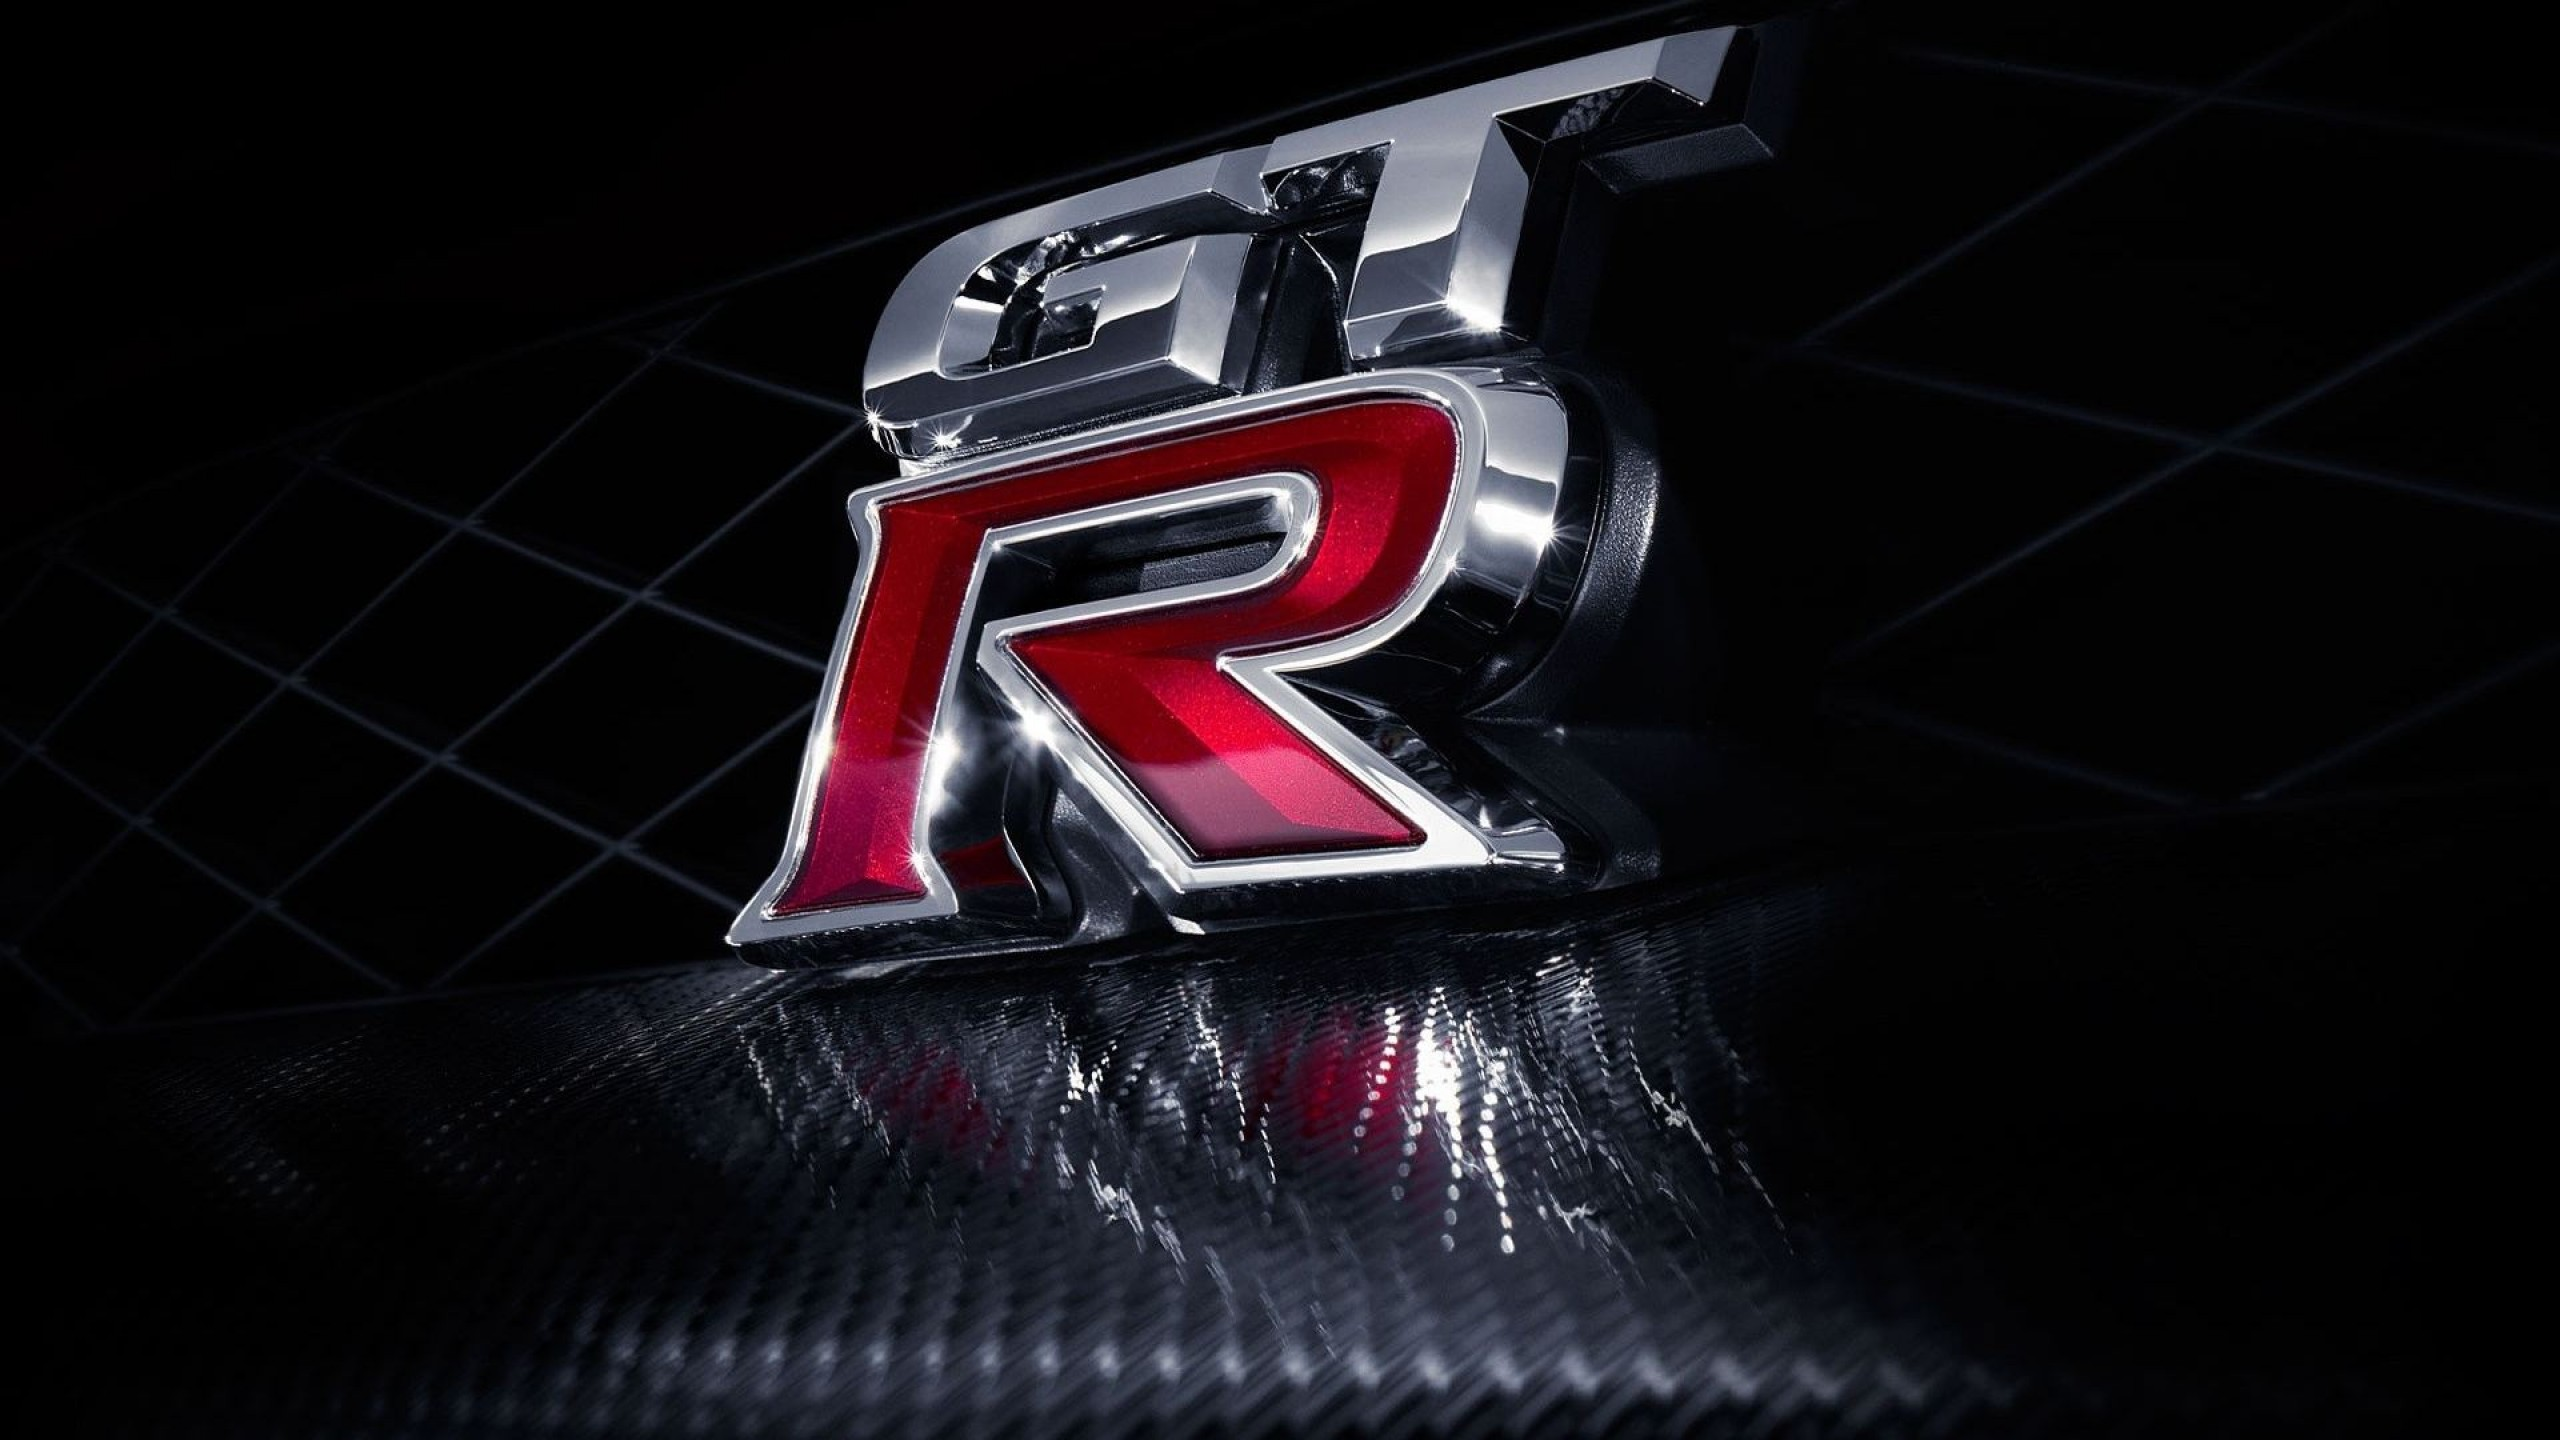 Nissan GT-R Badge Logo Wallpaper for Desktop and Mobiles